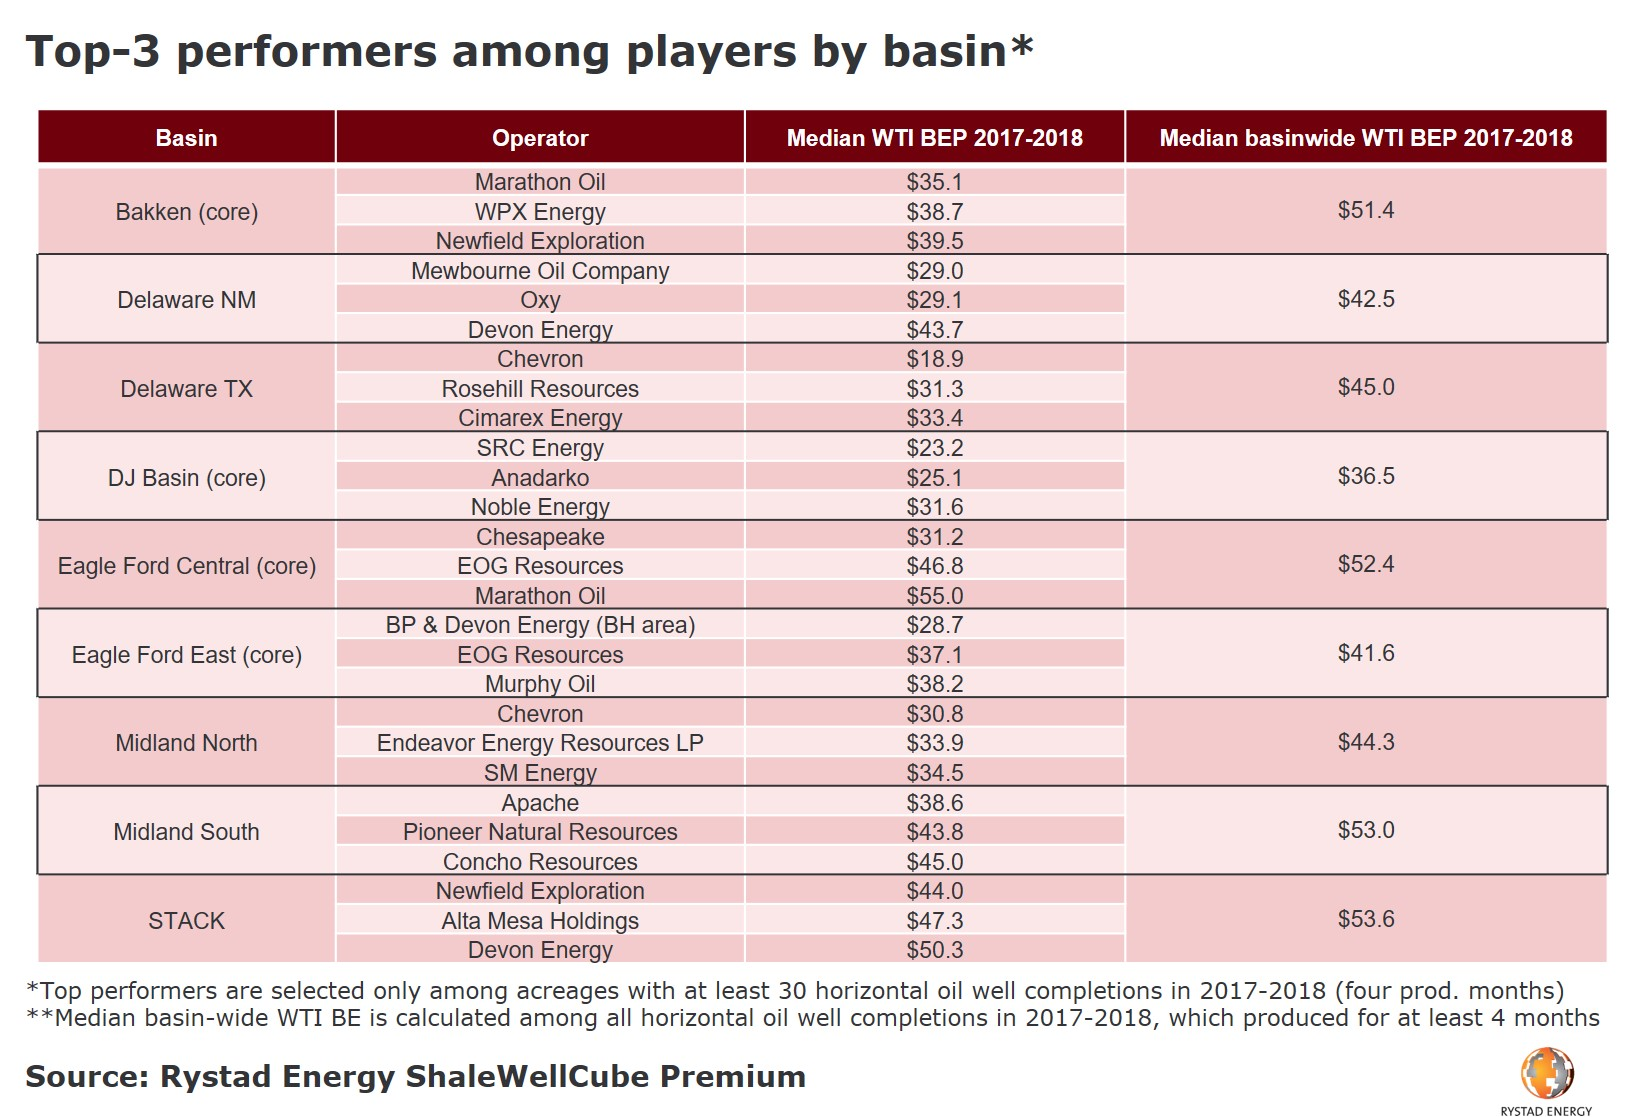 A table showing the Top-3 performers among players by basin